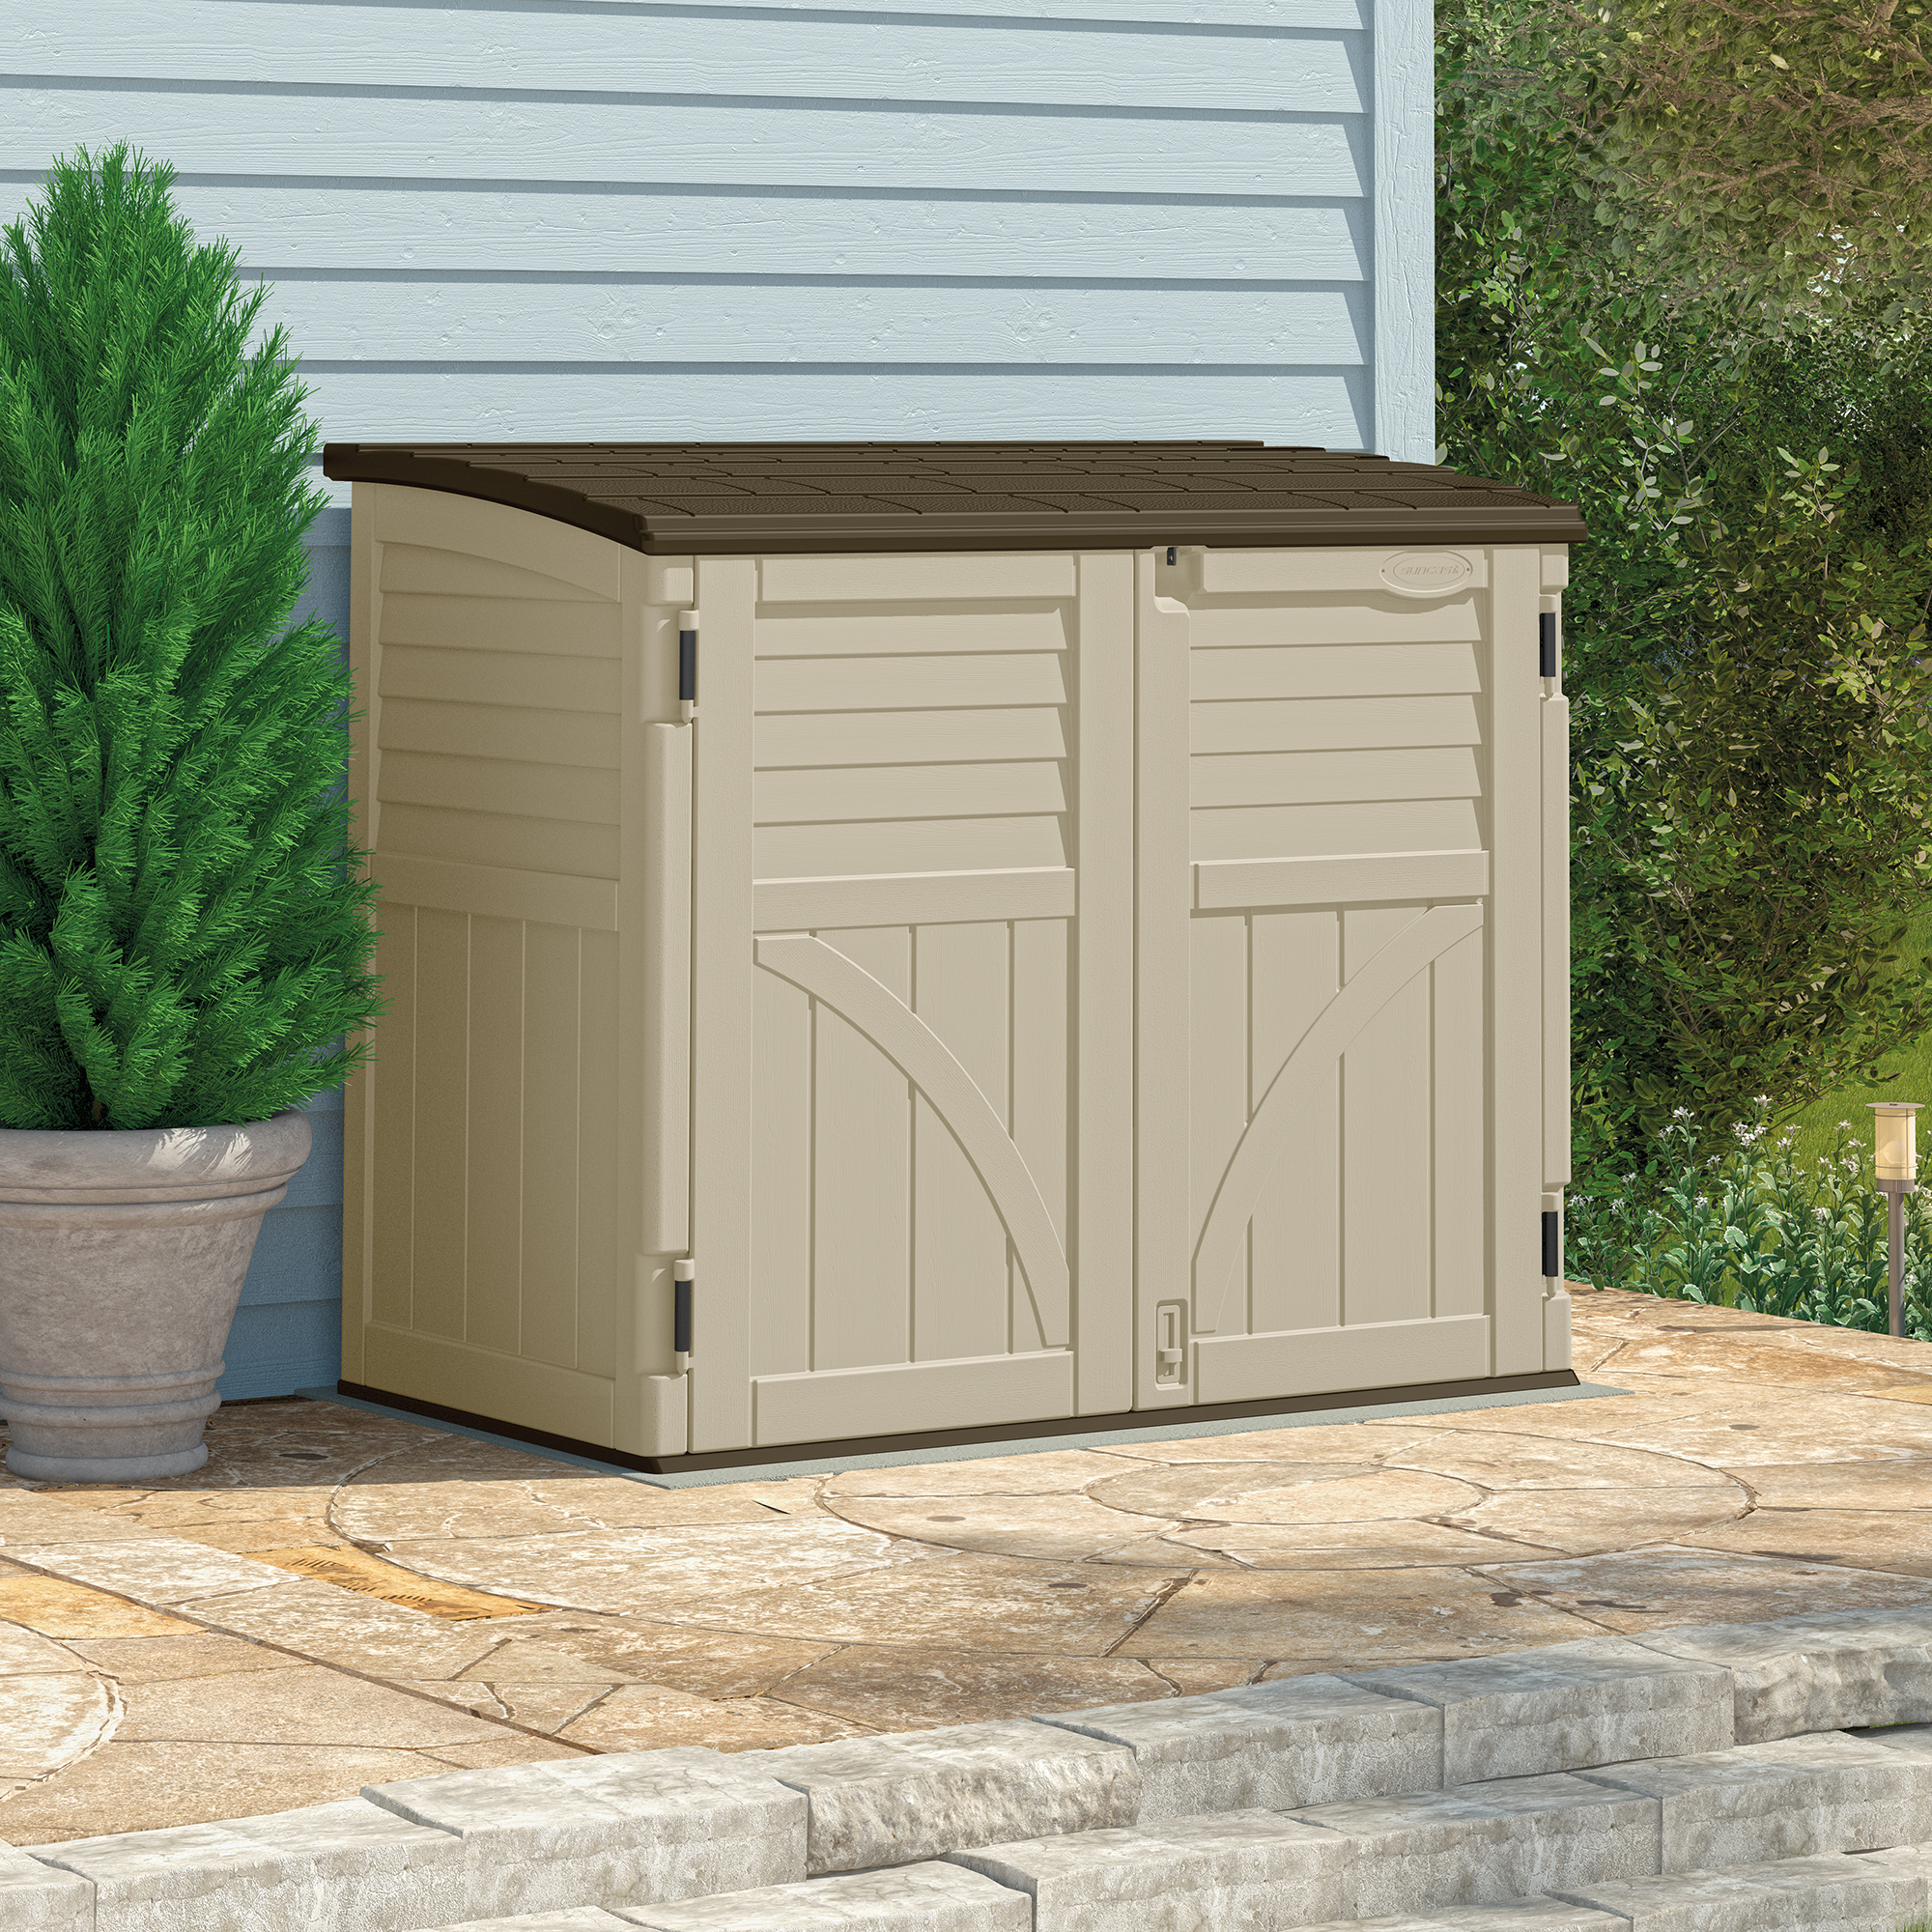 Plastic sheds for sale buy plastic garden shed uk for Small outdoor sheds for sale